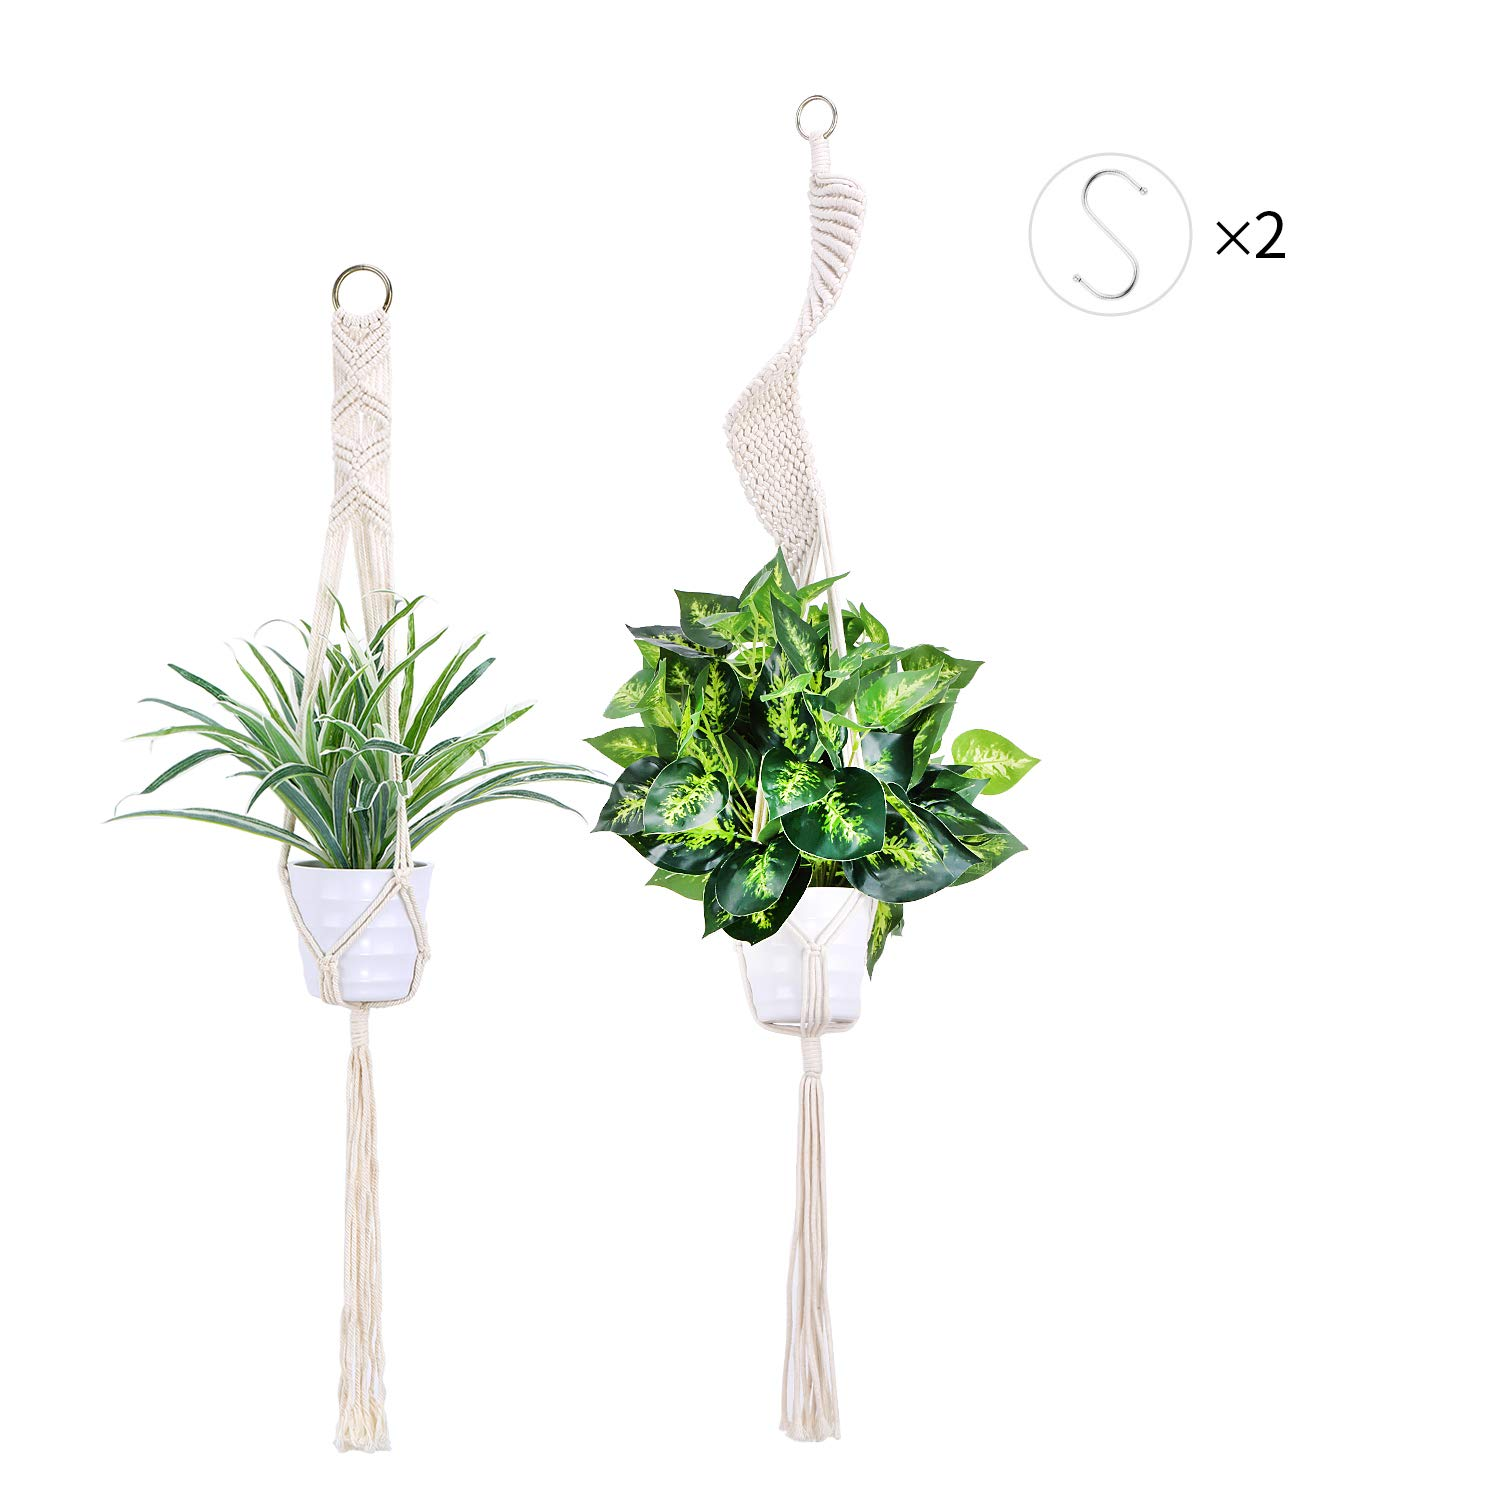 3pk Ceramic Hanging Planter for Indoor Plants Colorful Round Pots Air Succulent Holder Container Cactus Pot with Cotton Rope Hanger Outdoor Decor 23 Bees 3, Nature s Sunrise